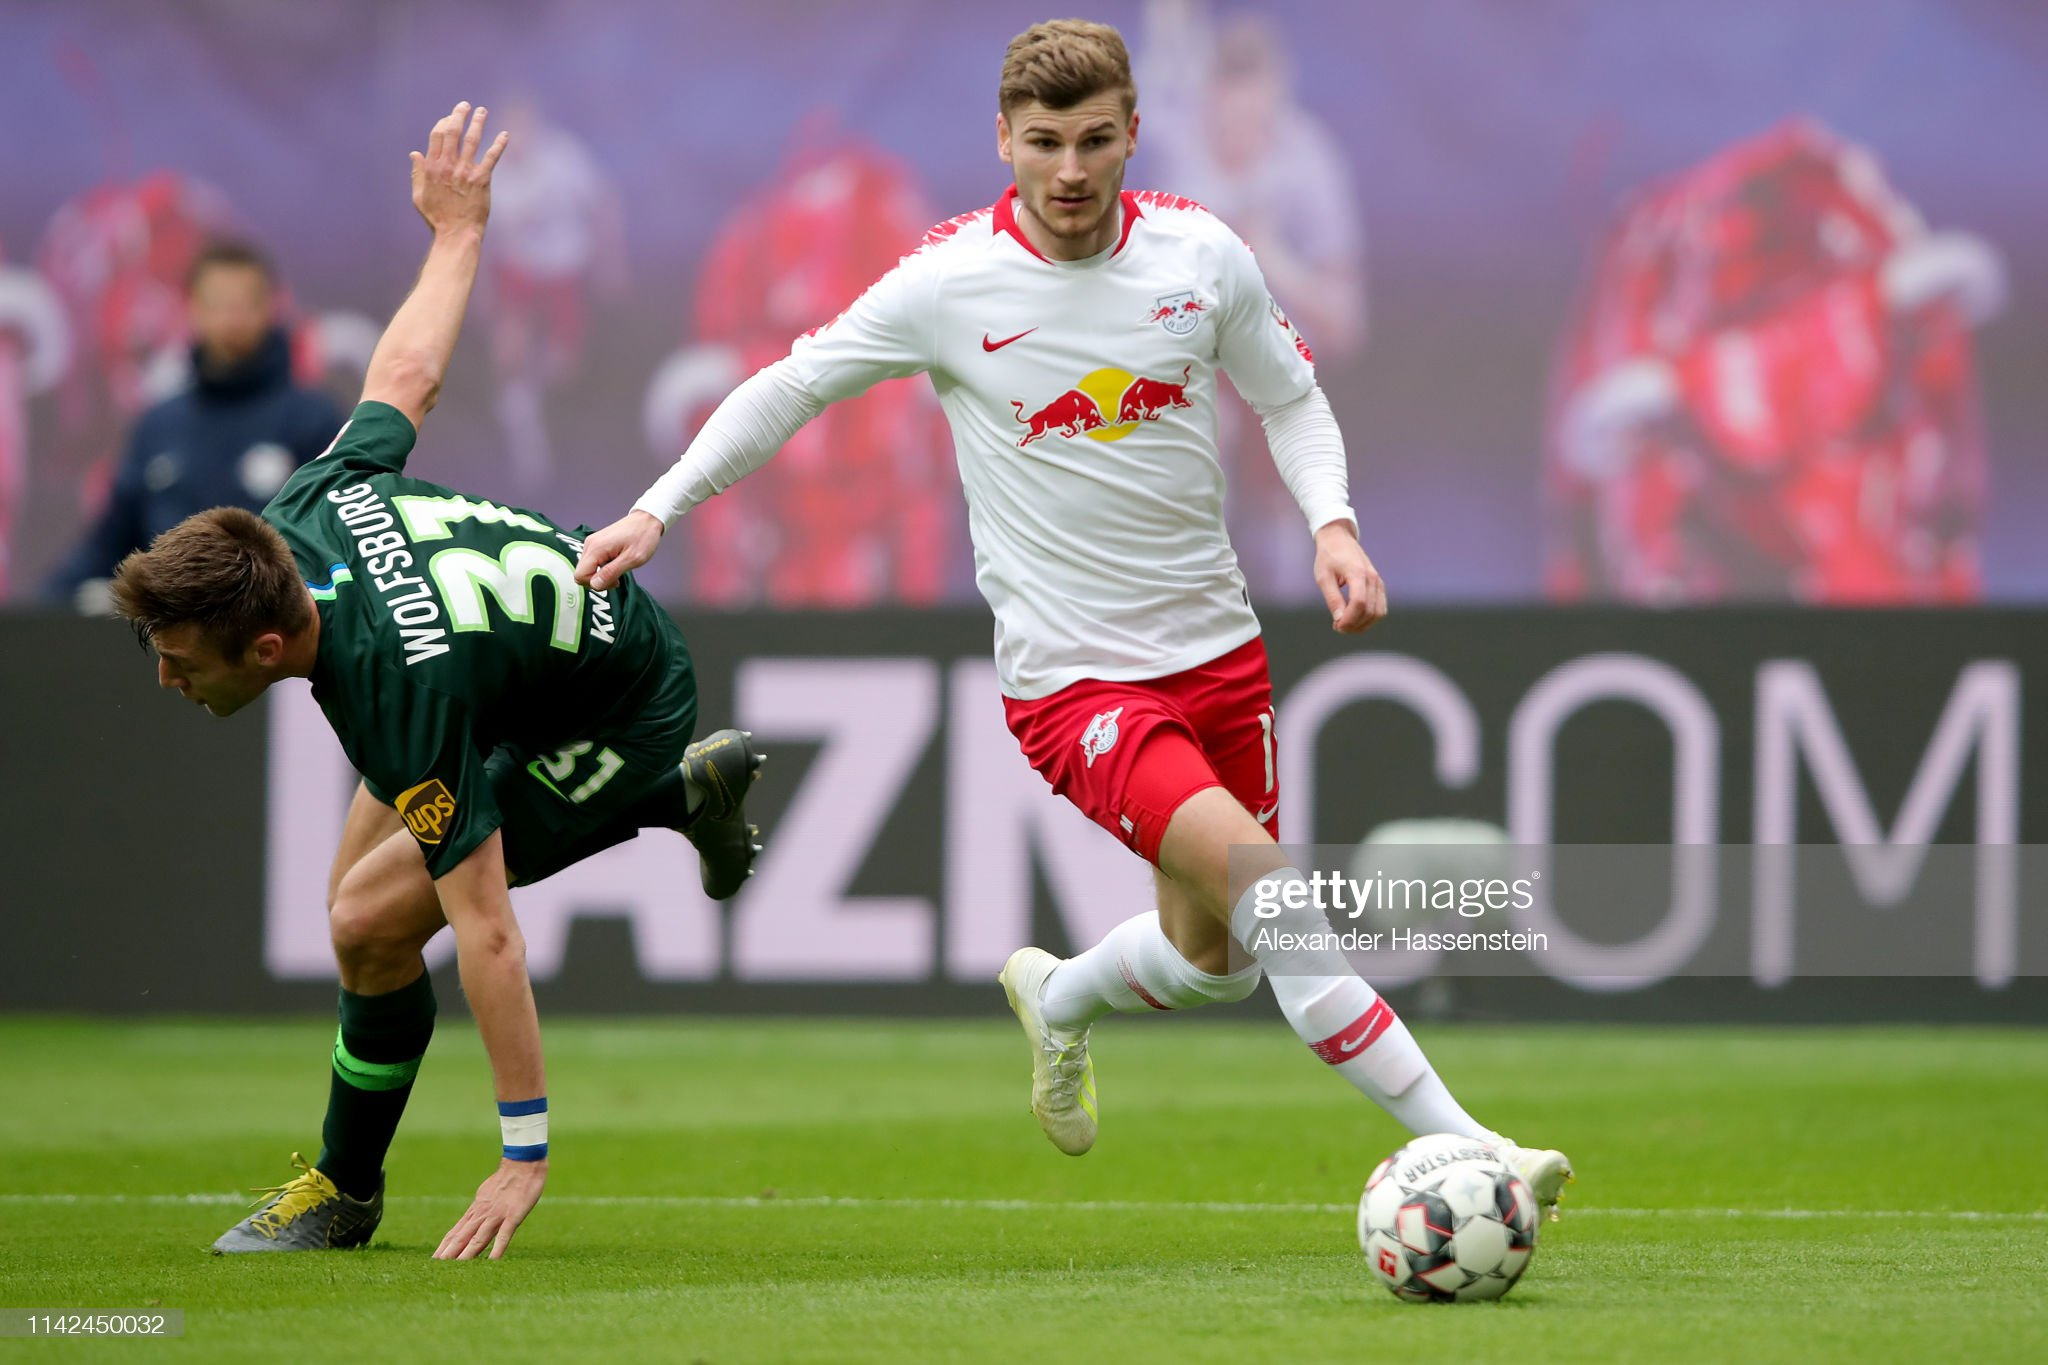 RB Leipzig v VfL Wolfsburg - Bundesliga : News Photo